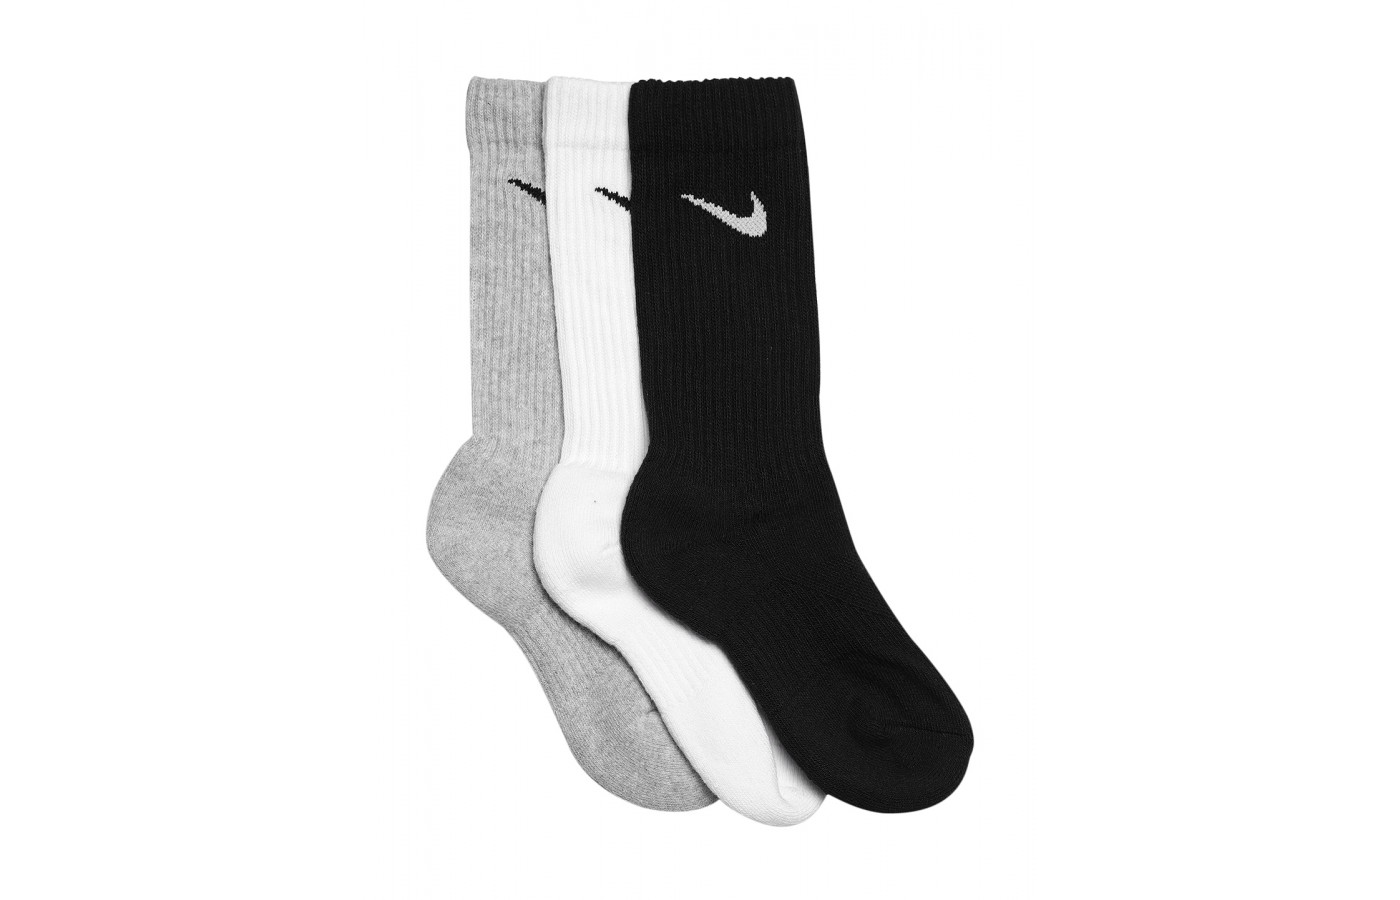 Nike Cushion Socks Back View